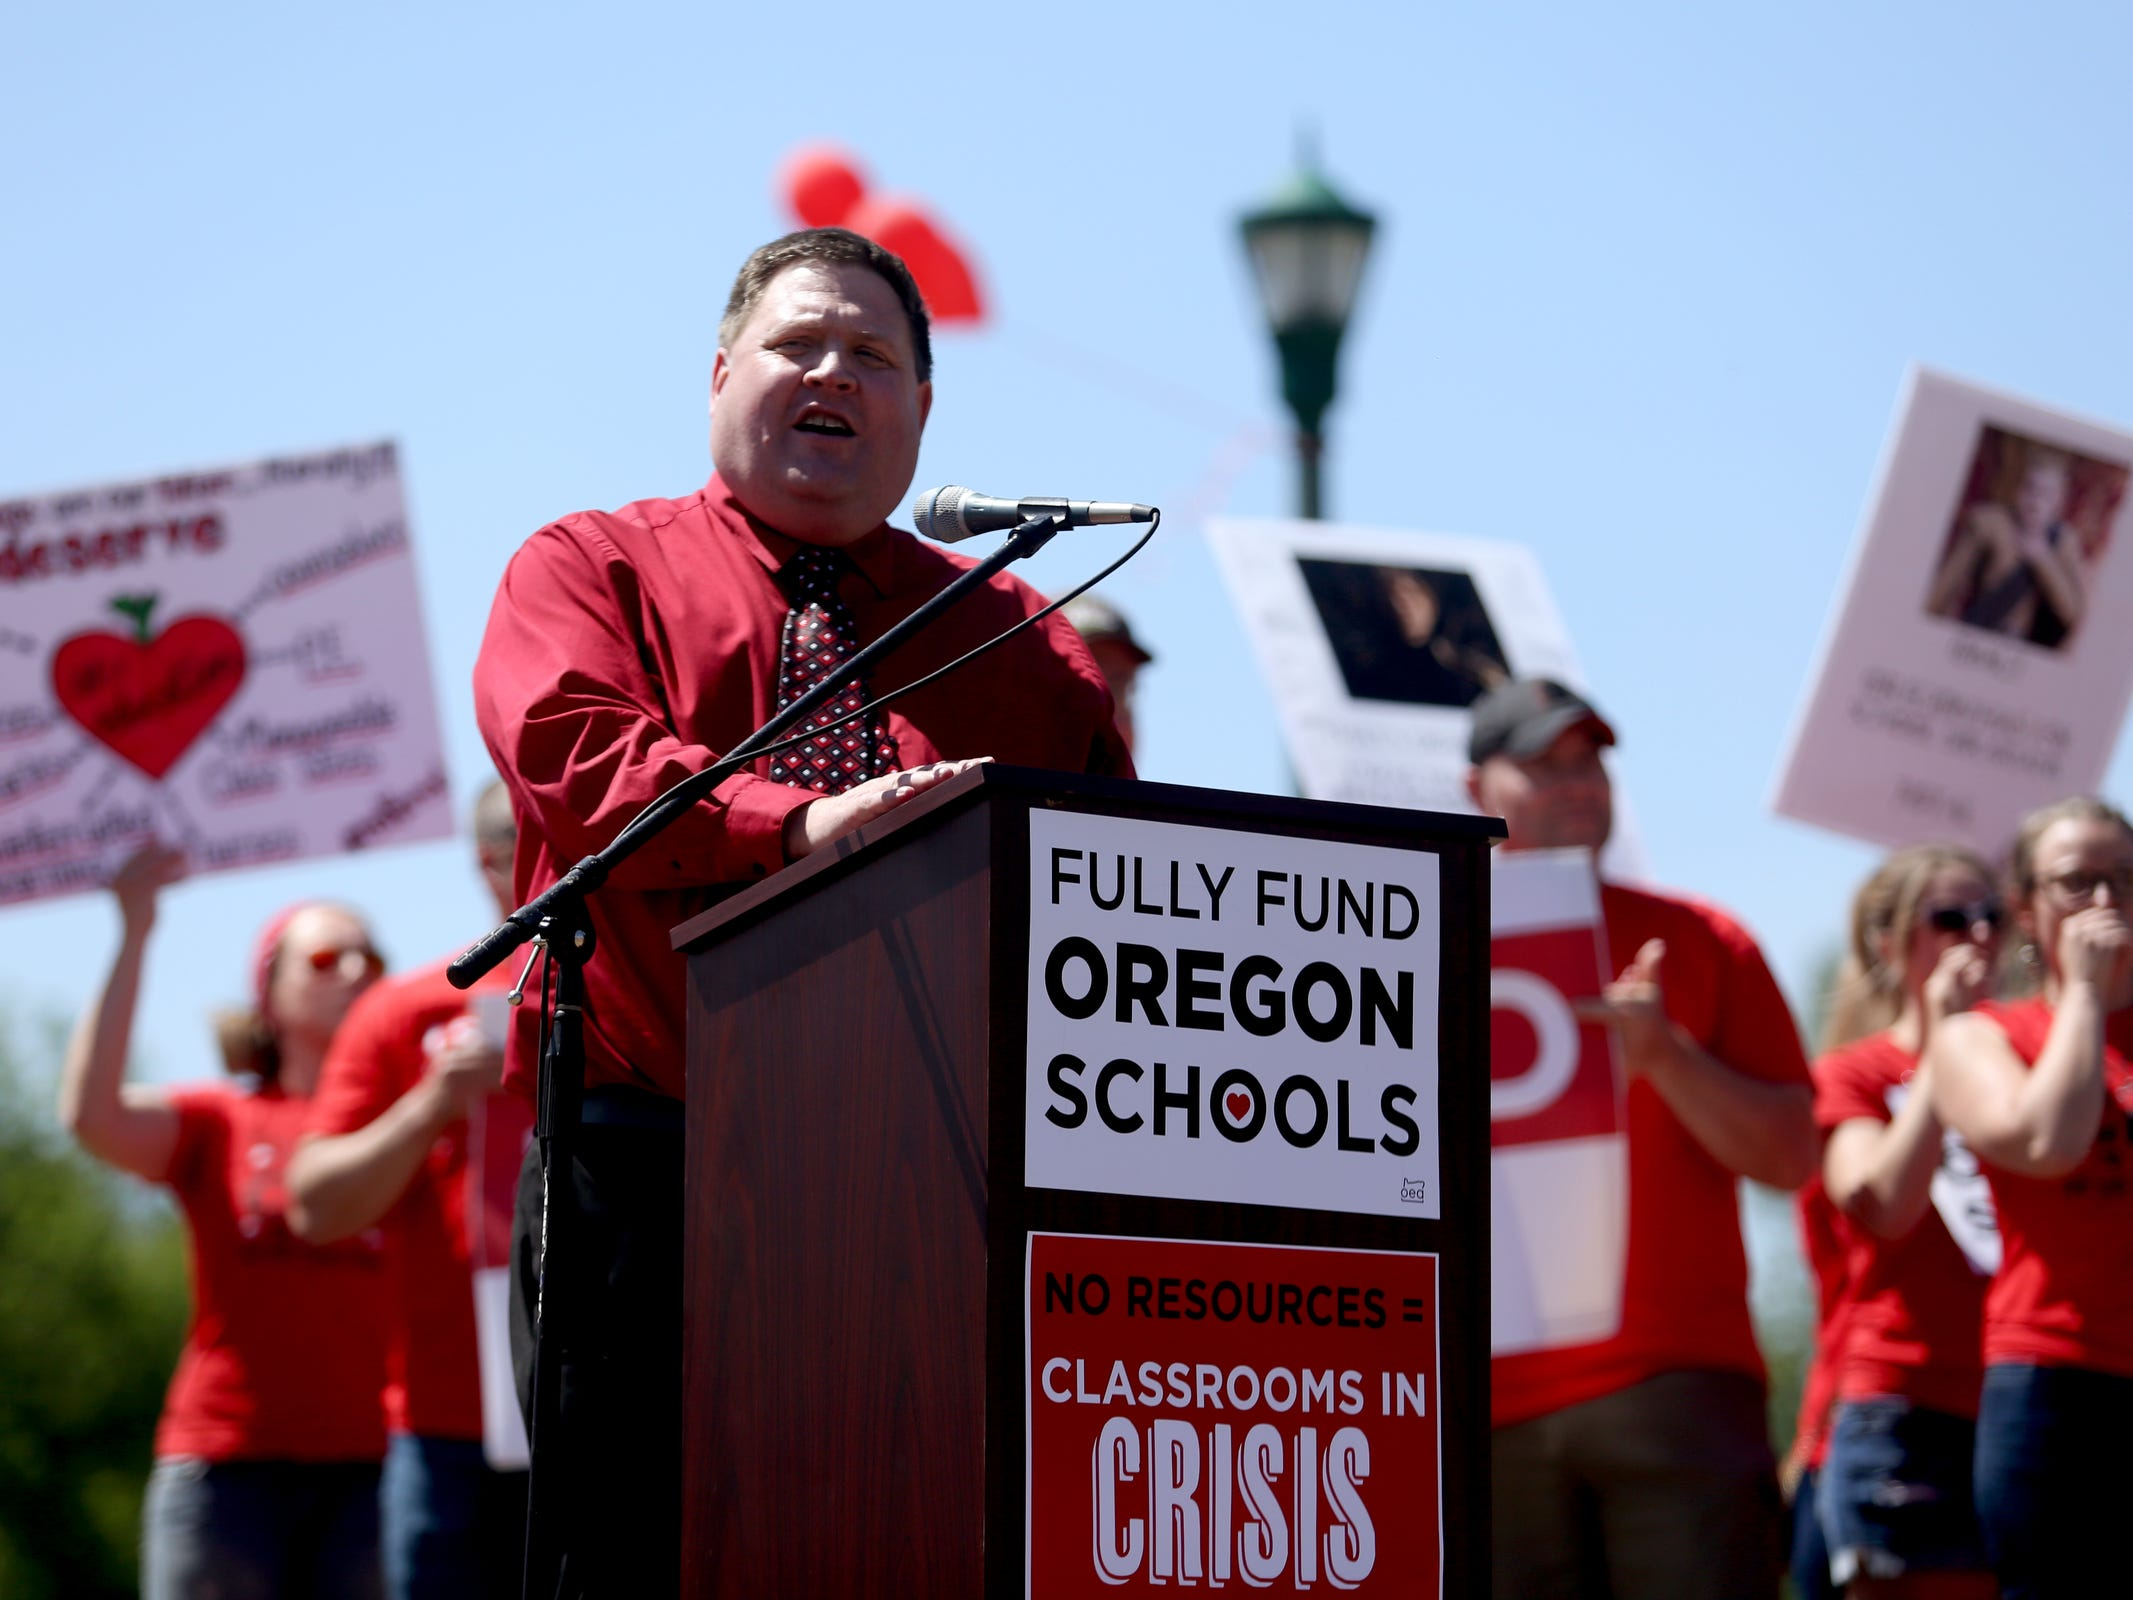 John Larson, the Oregon Education Association president, speaks as thousands of teachers and education activists rally for a day of action starting at Riverfront Park in Salem on May 8, 2019. Schools across Oregon closed early or were closed for the day as teachers walked out to demand more school funding to address large class sizes, low graduation rates and other concerns.